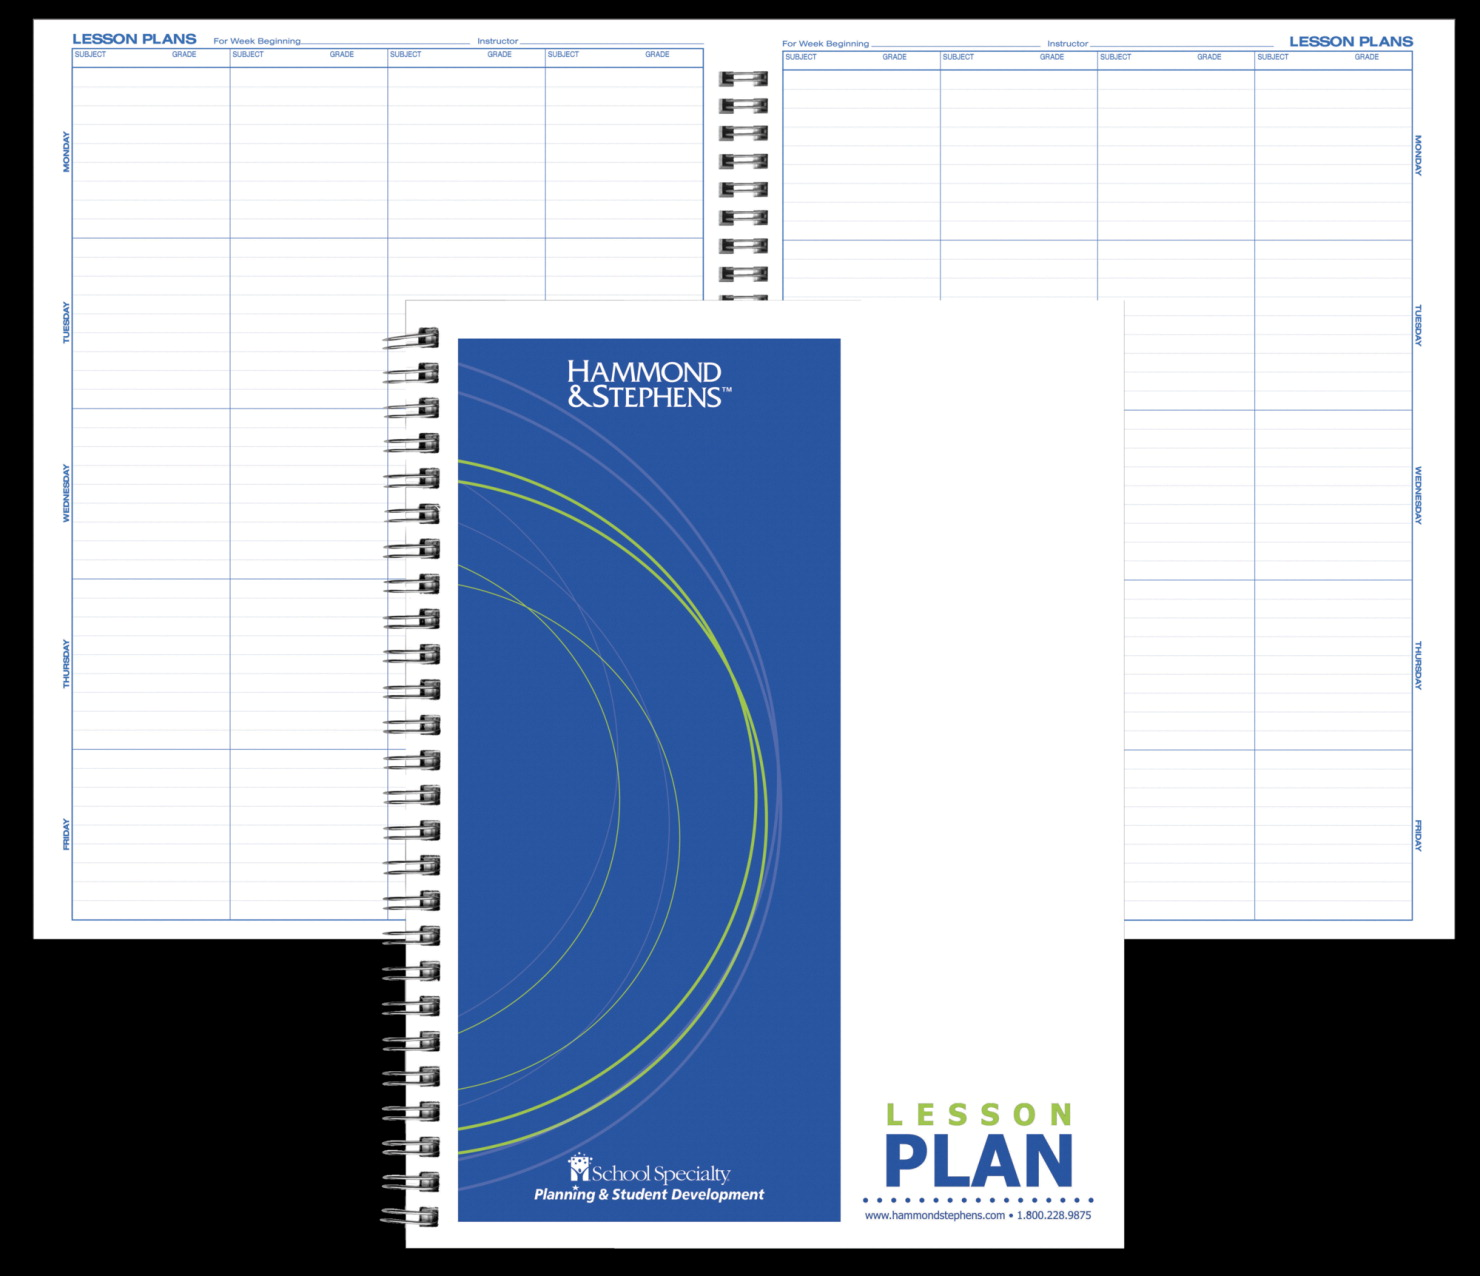 Hammond And Stephens Lesson Plan Book, White-Blue - SCHOOL SPECIALTY ...